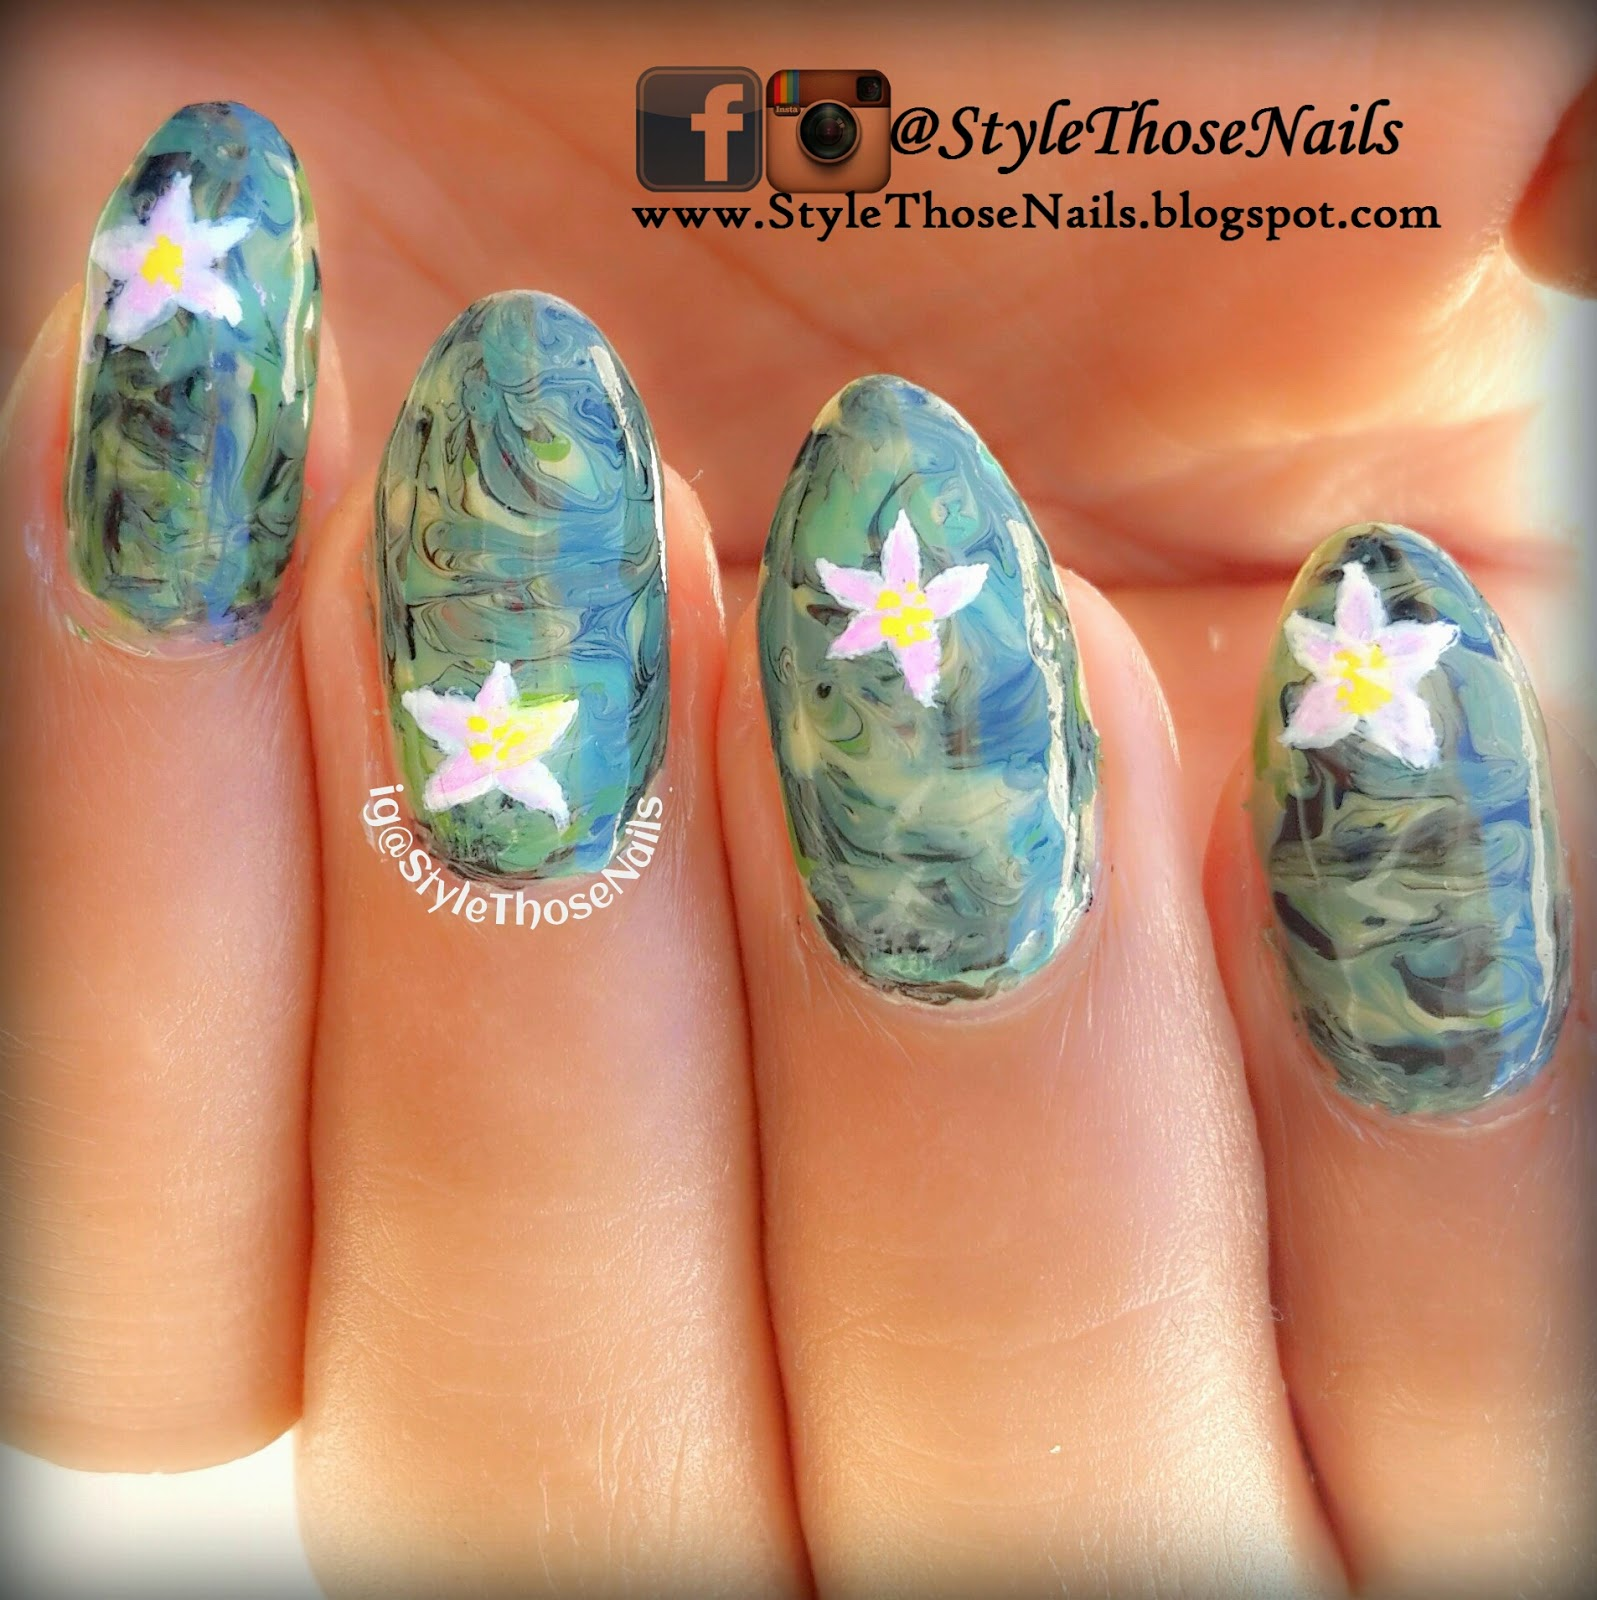 Style Those Nails: Camouflage Nails using dry marbling